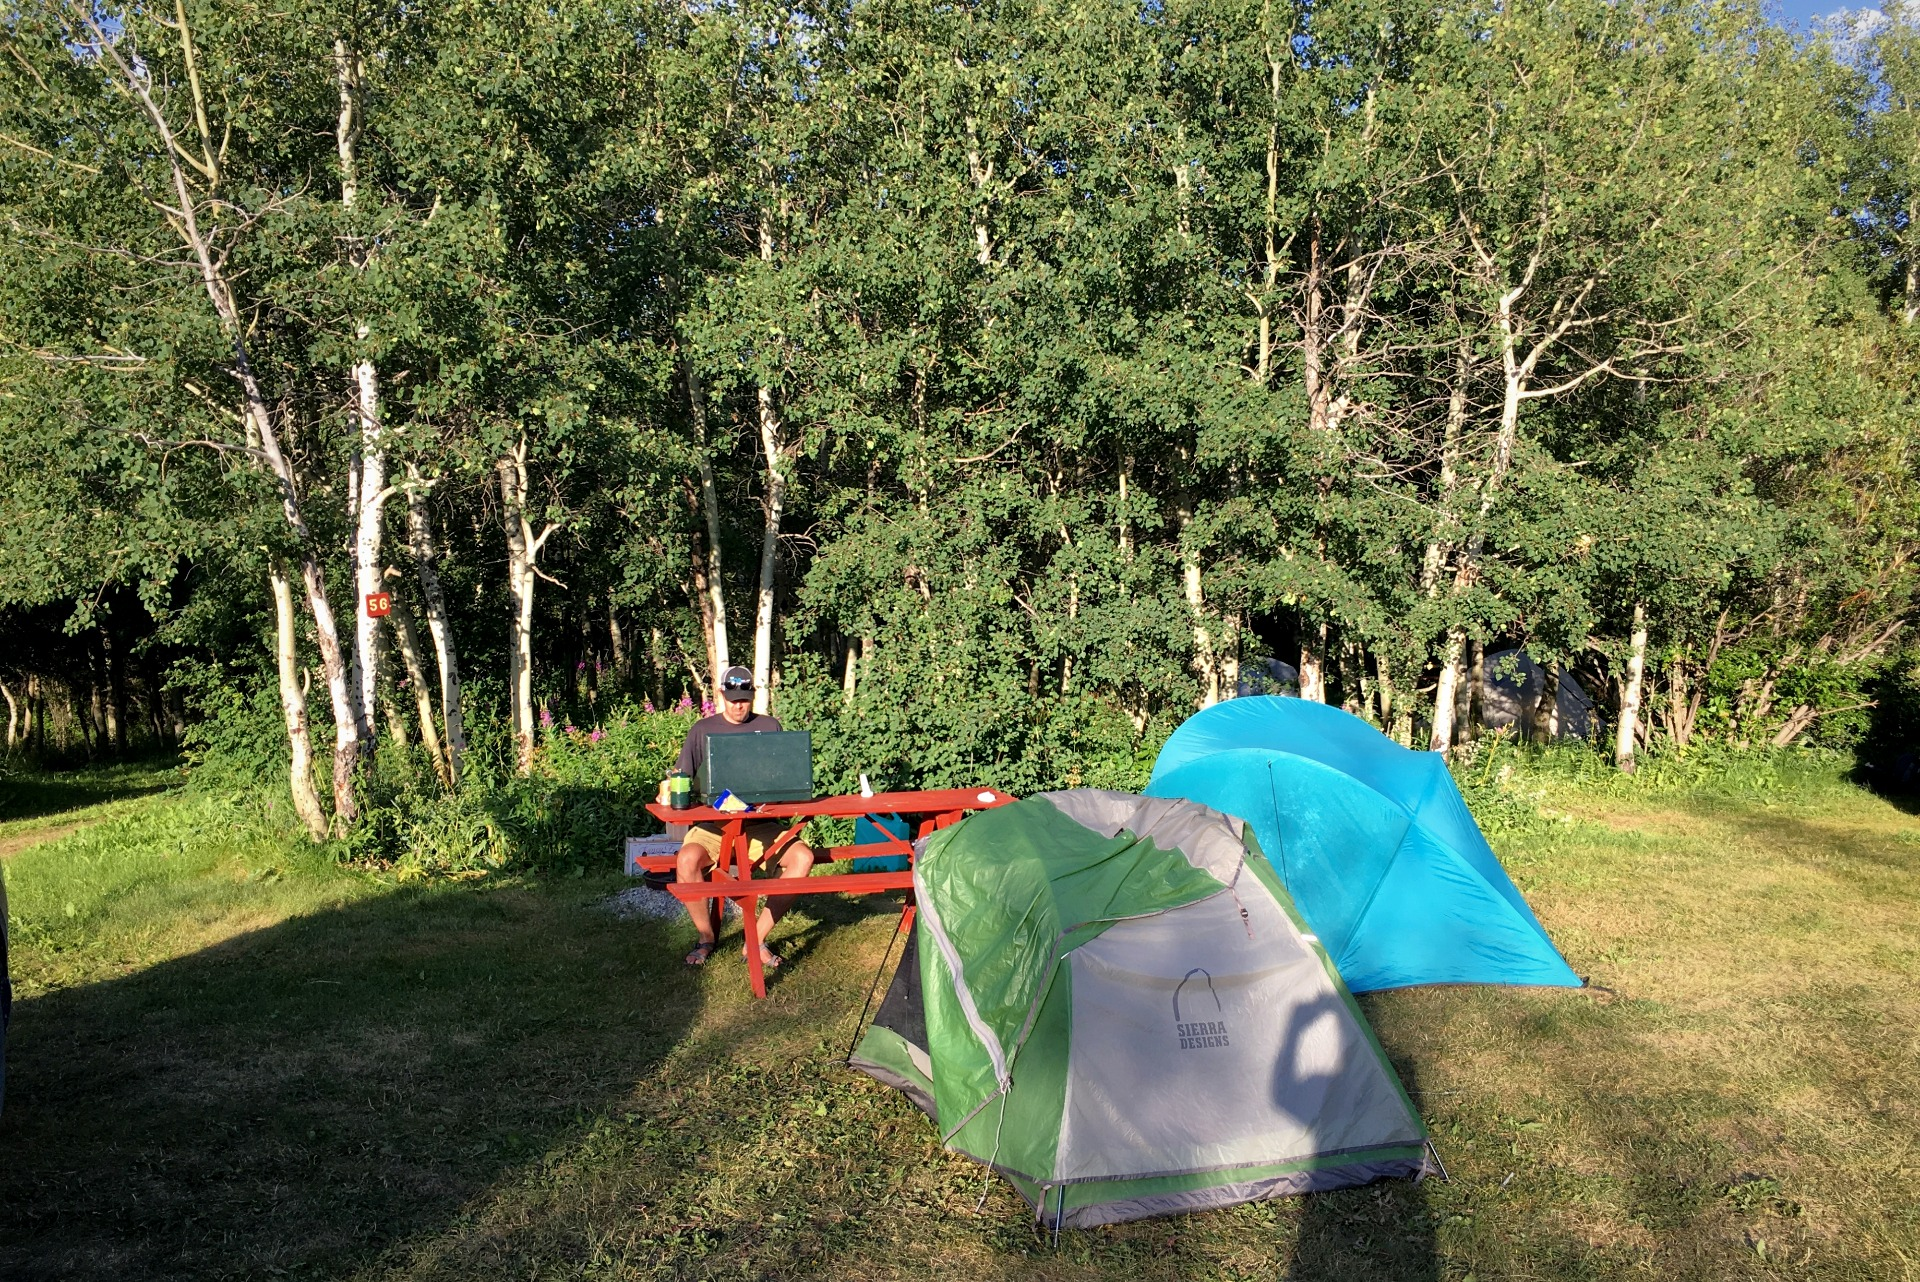 Camping near Glacier National Park at Johnson's of St. Mary